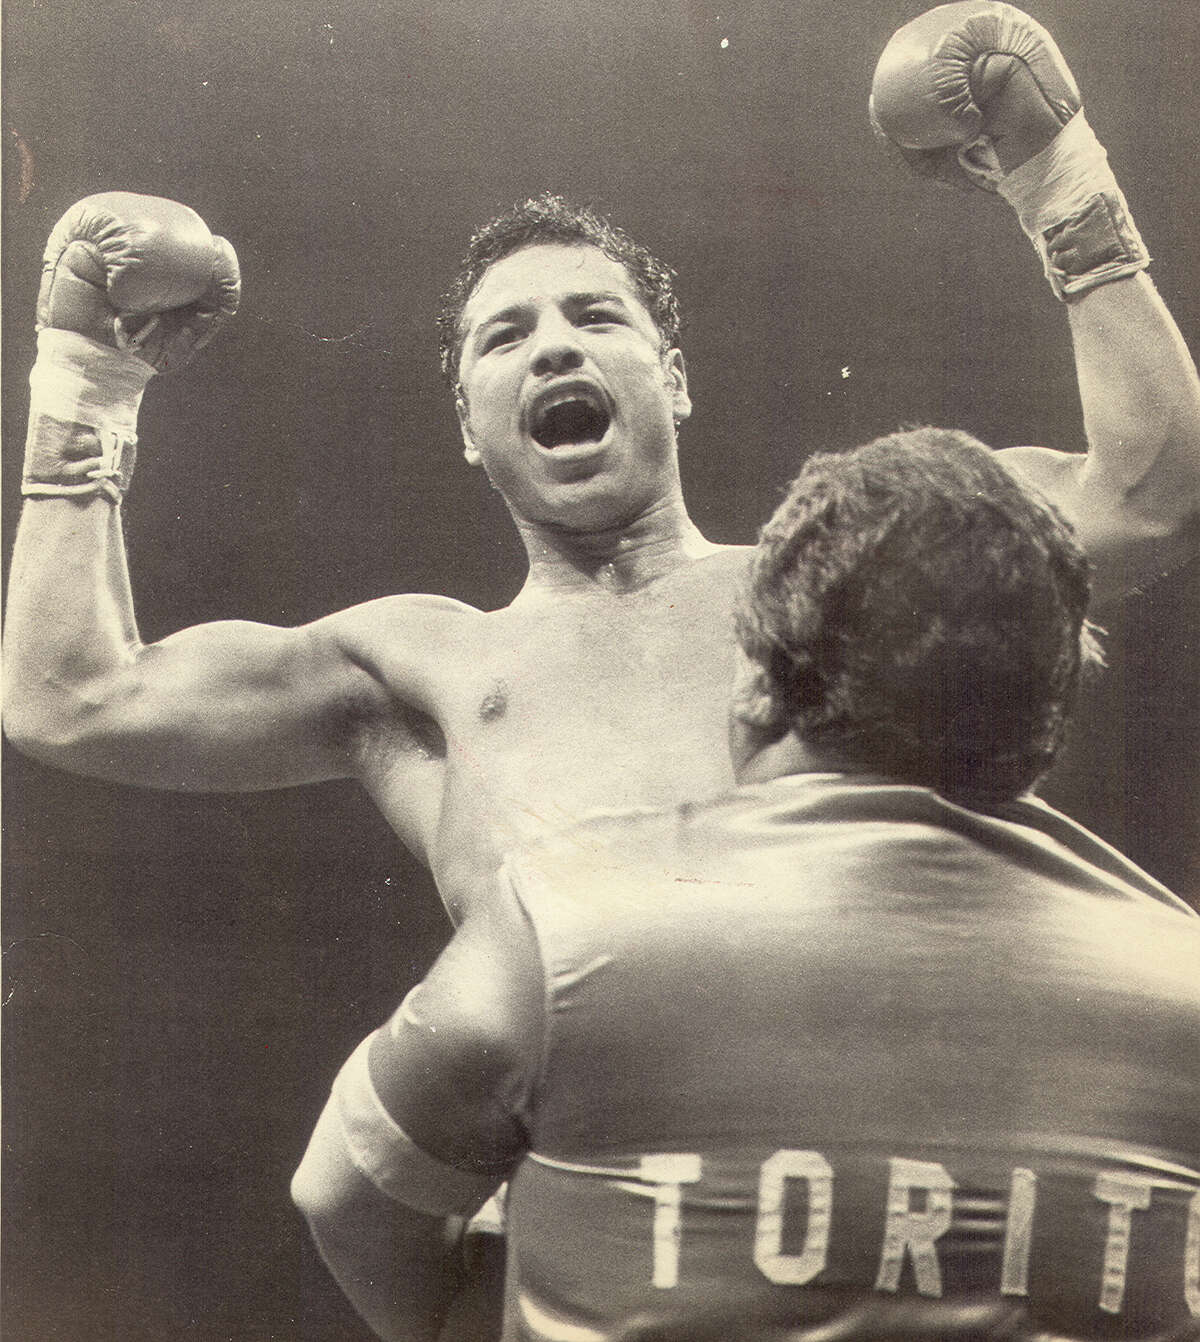 Tony Ayala Jr. is lifted up by his father Tony Ayala Sr. after a 1982 fight.